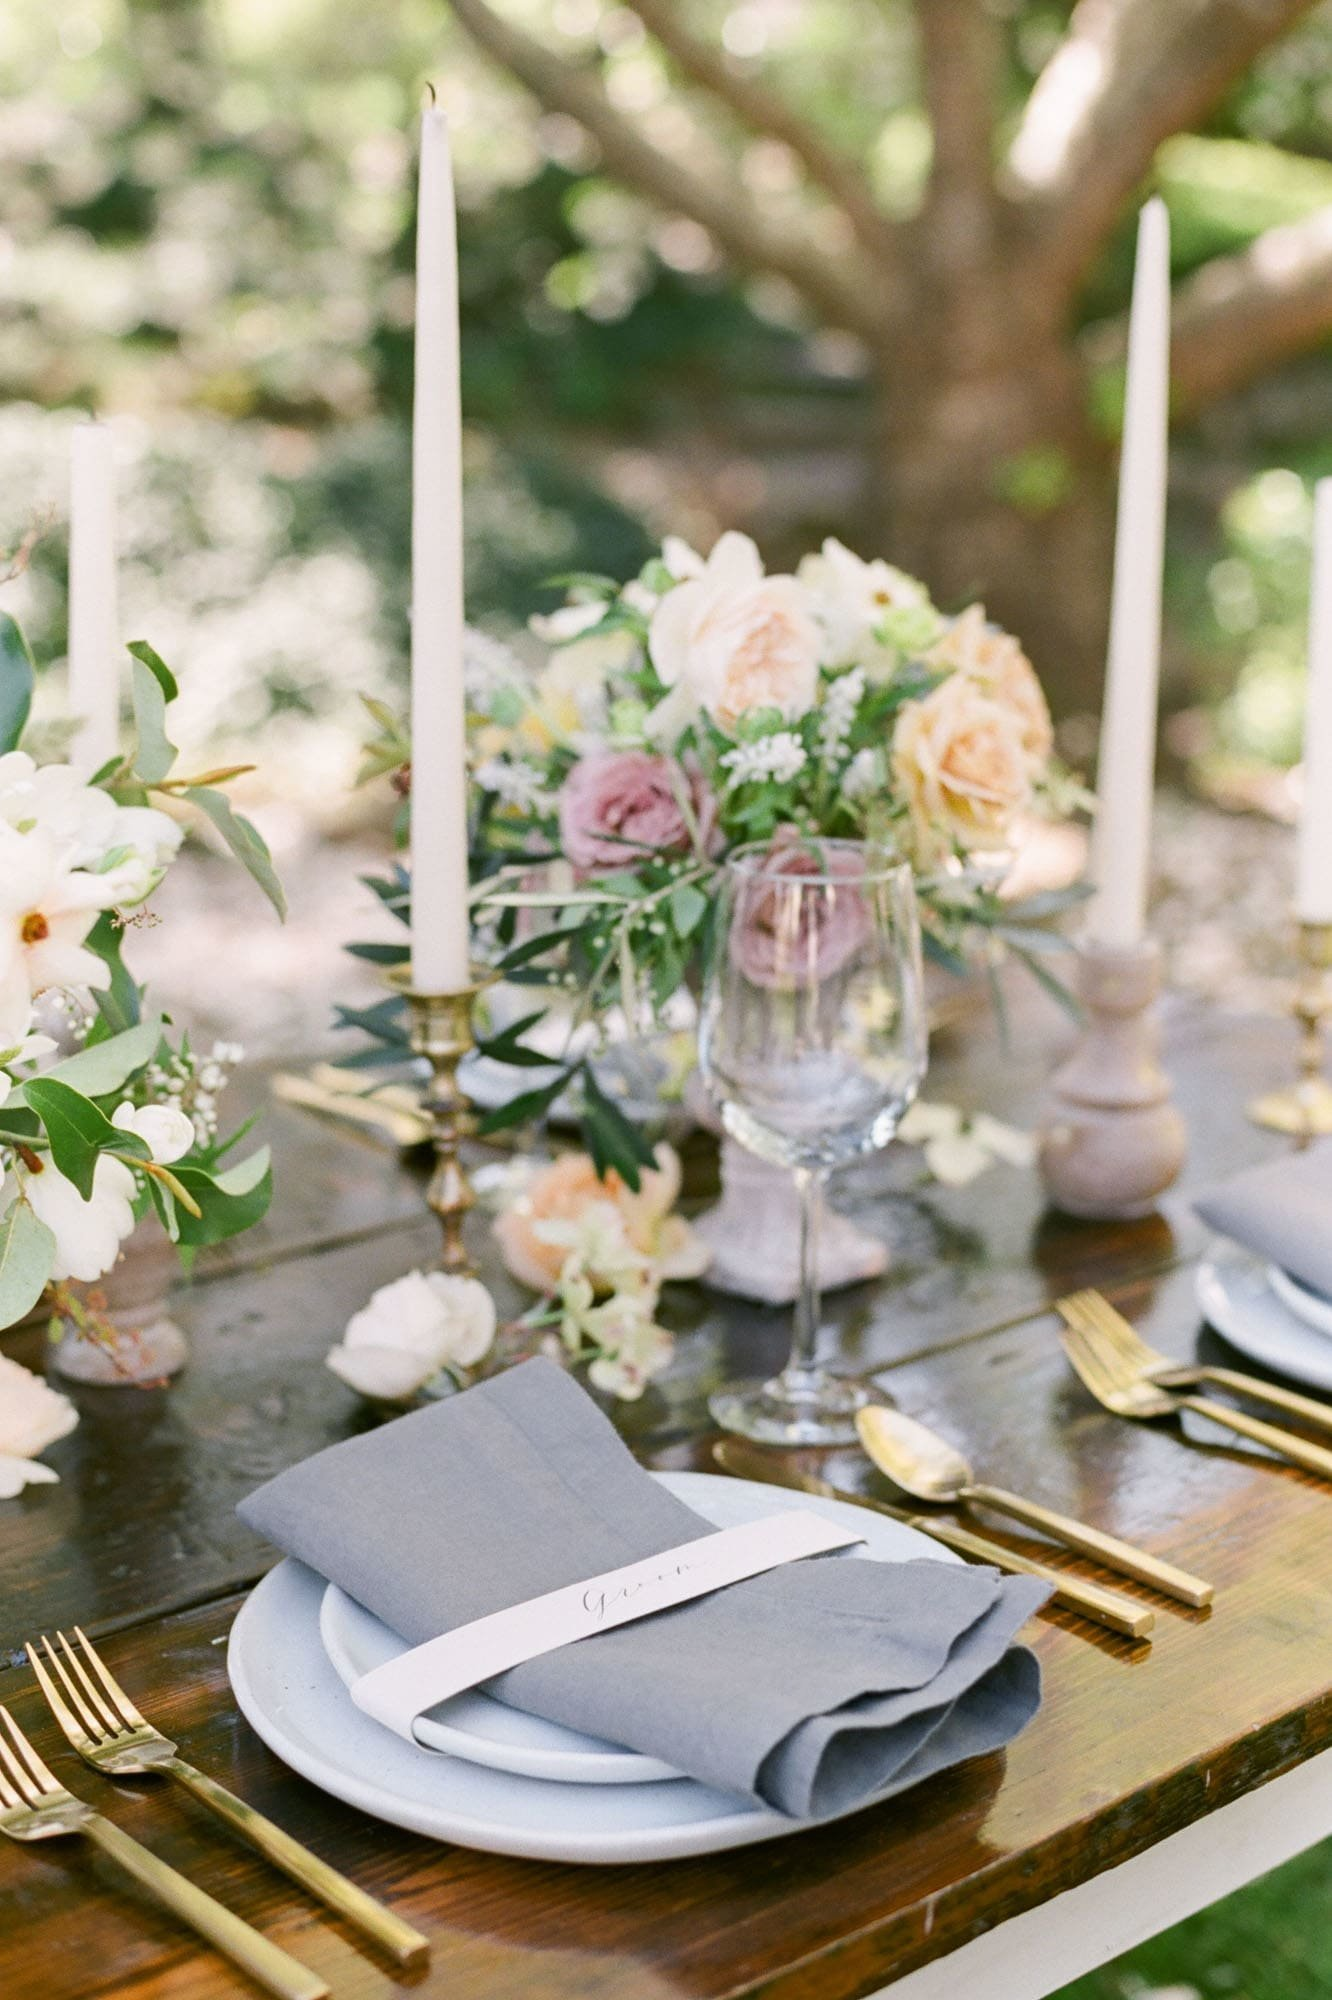 Styled tablescape at Columbia River Gorge wedding